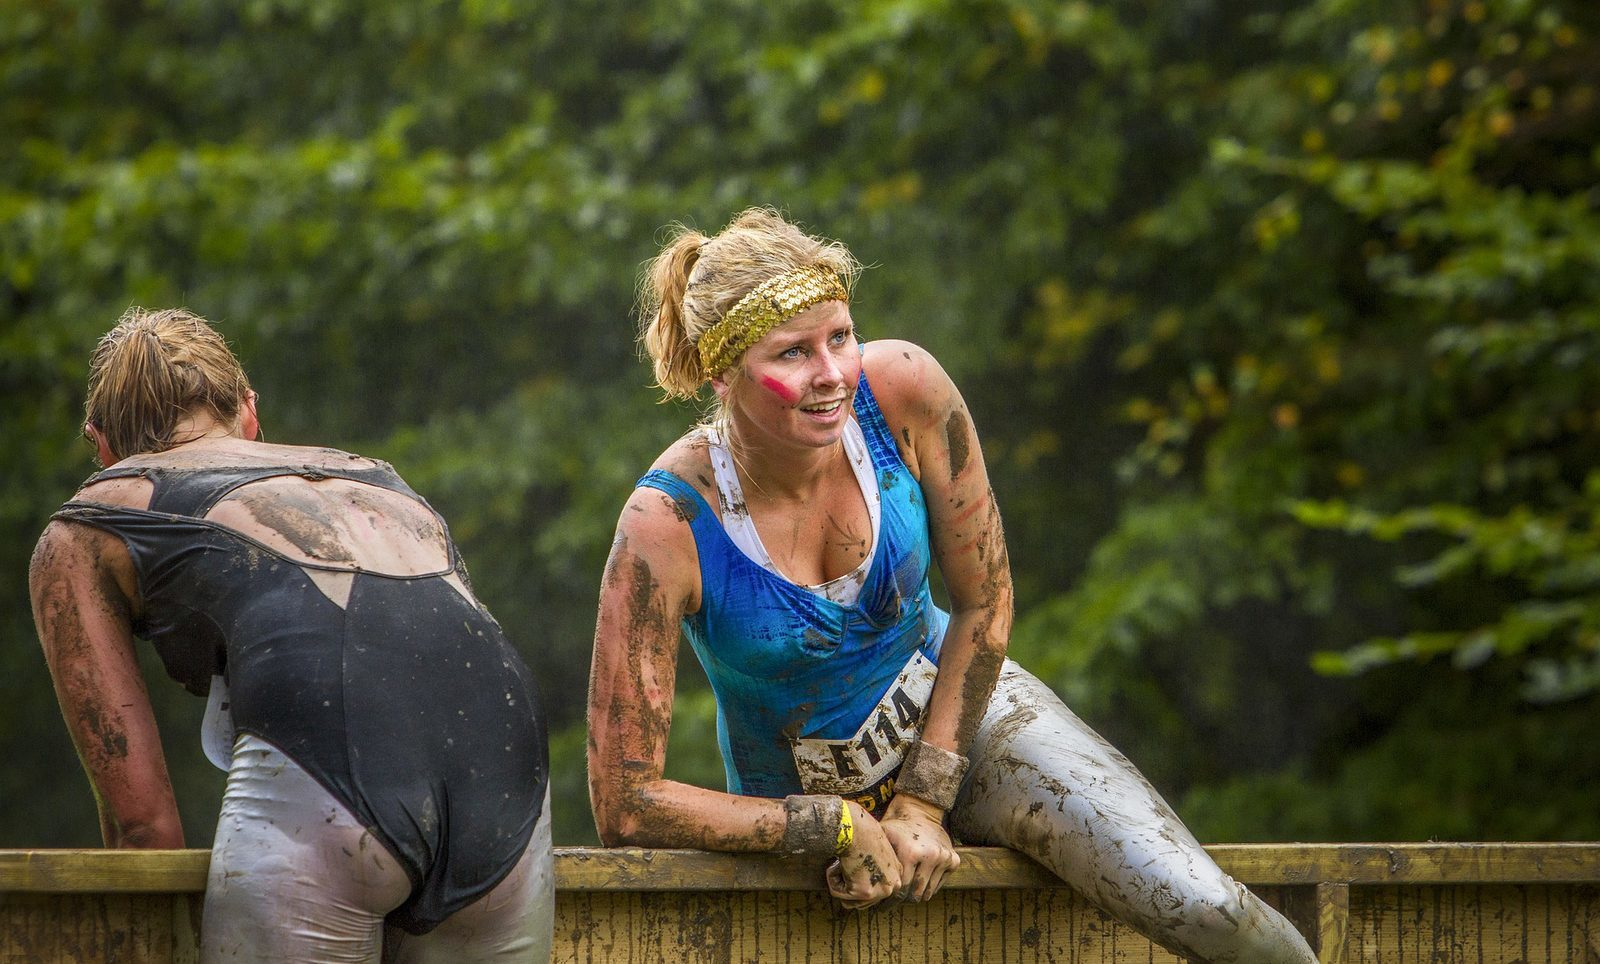 Flevonice Obstacle Run